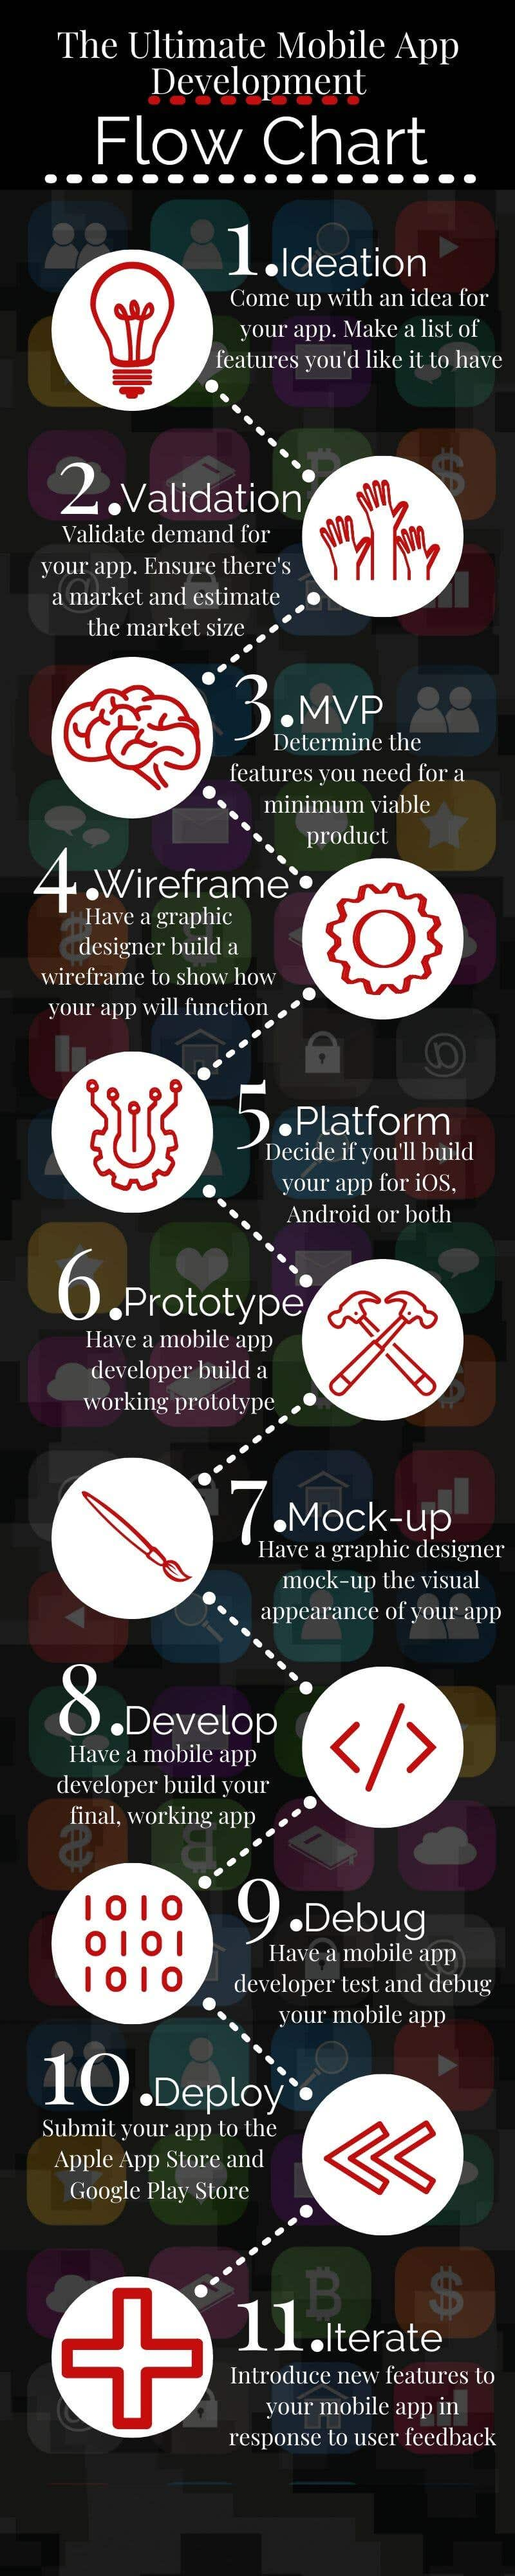 mobile app development process flow chart infographic